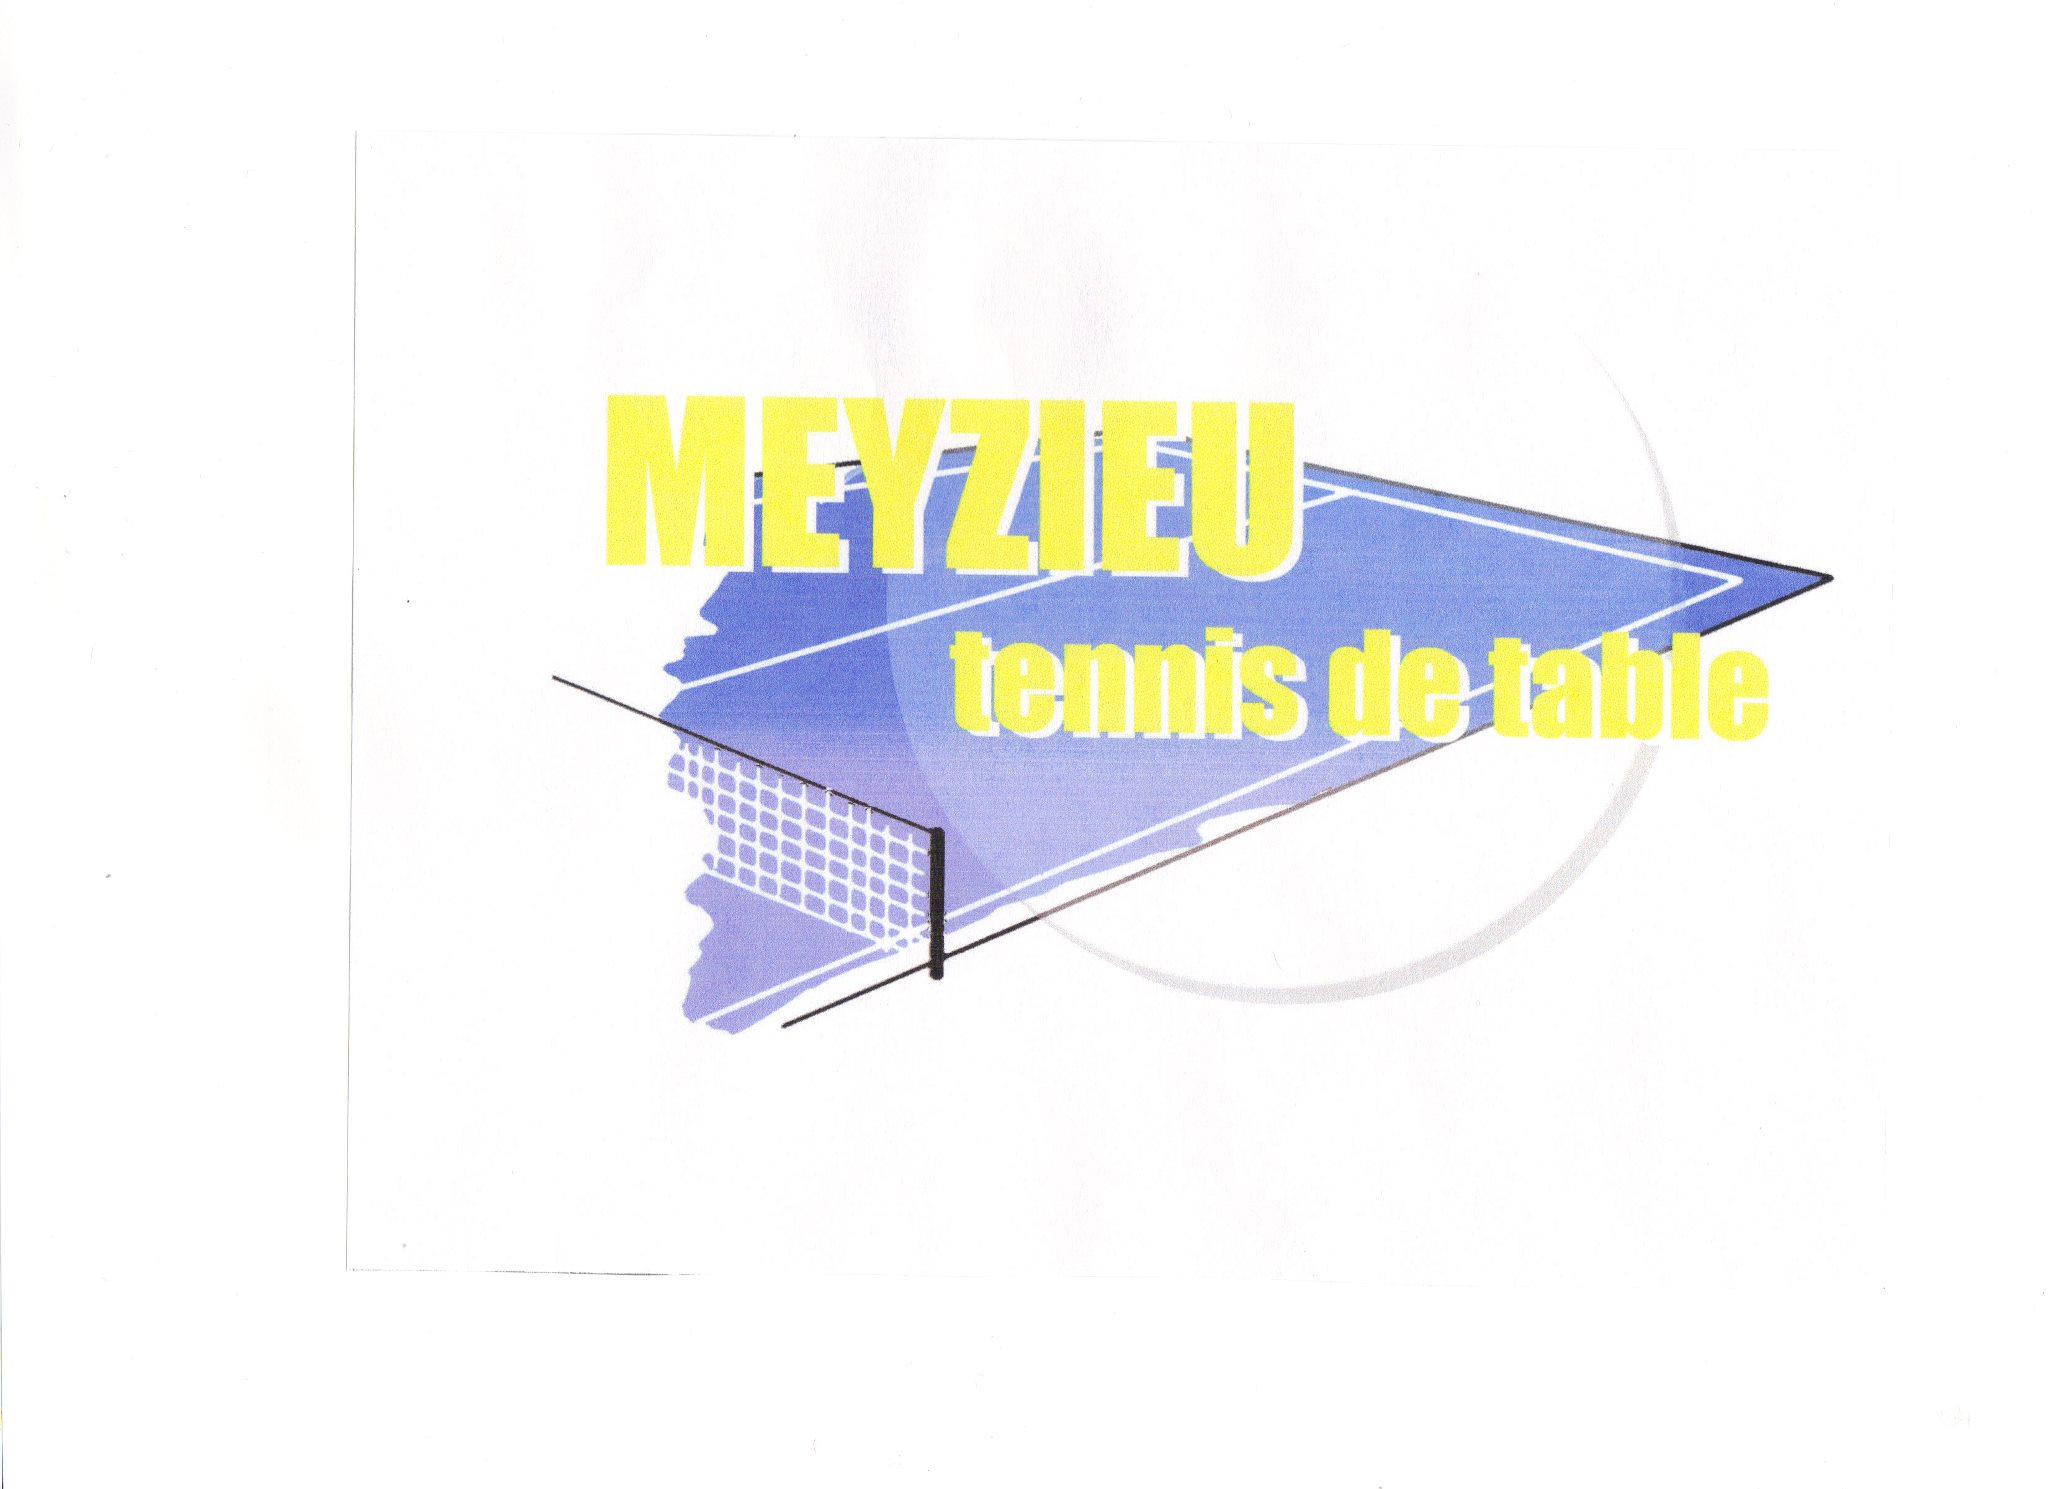 Crit rium f d ral tour 2 convocations messieurs dames - Comite departemental de tennis de table ...